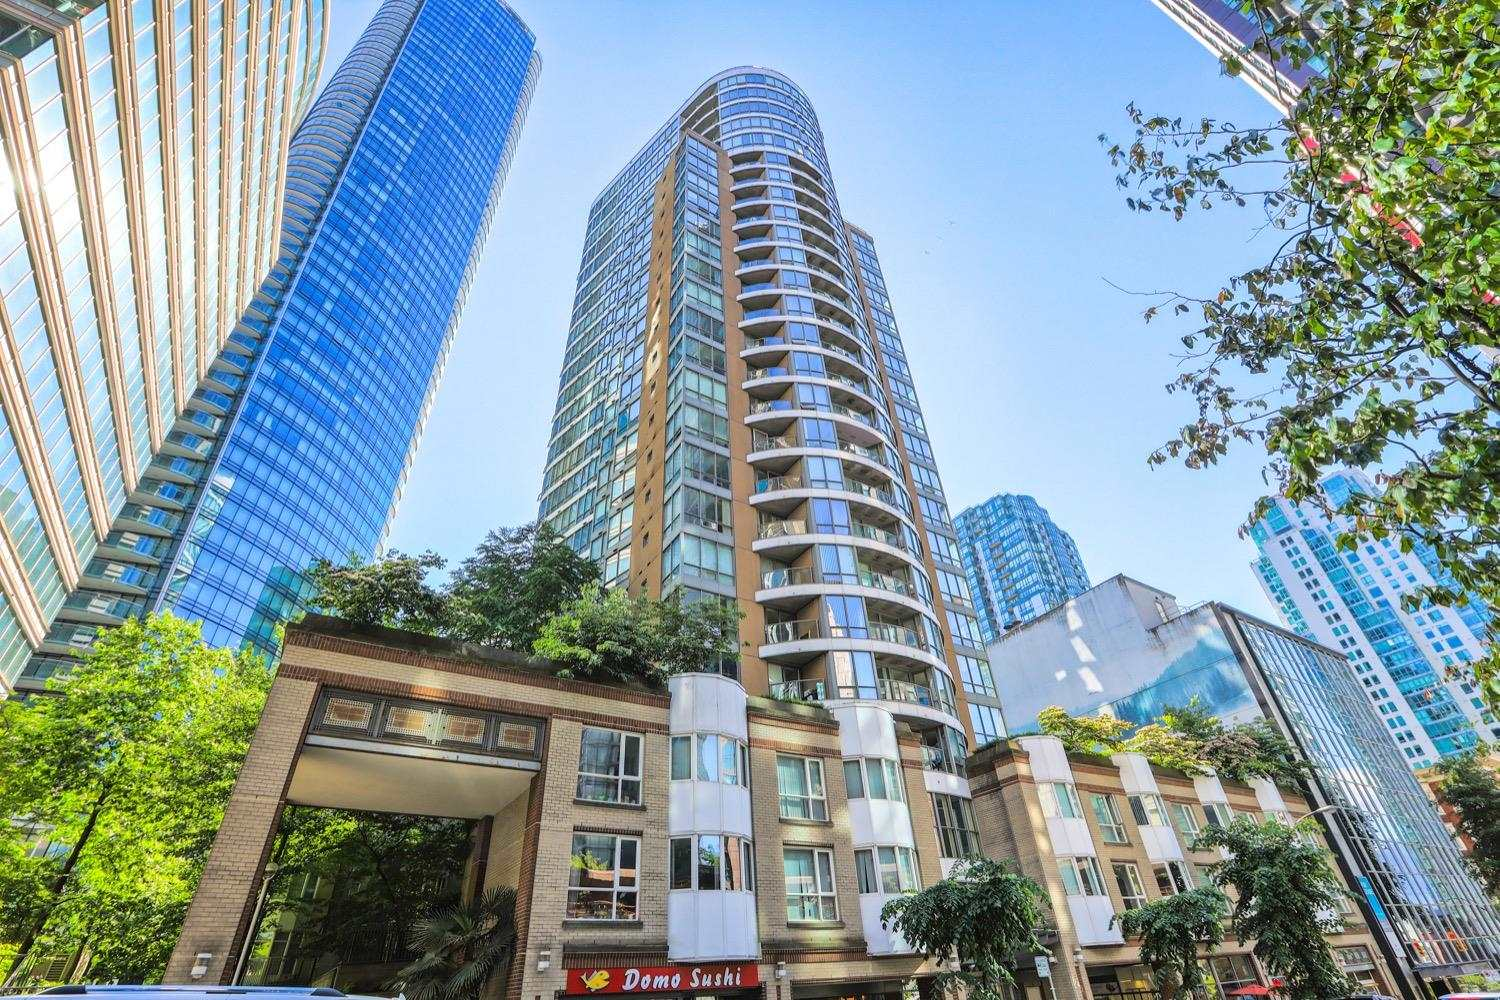 908 1166 MELVILLE STREET - Coal Harbour Apartment/Condo for sale, 1 Bedroom (R2594219) - #1